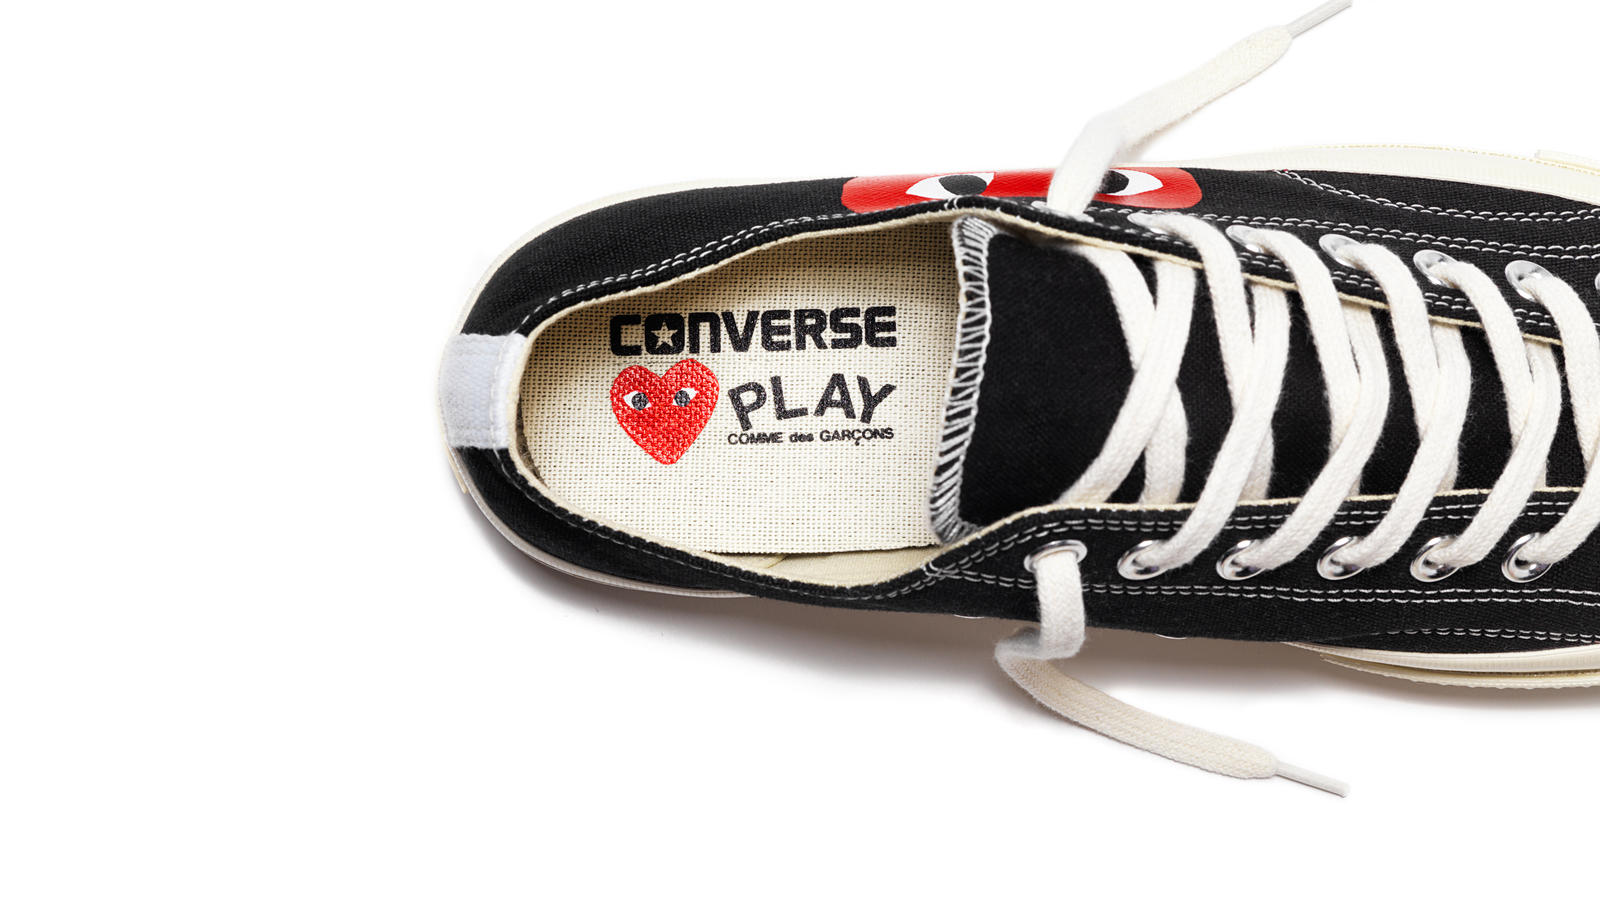 CONVERSE AND COMME DES GARCONS ANNOUNCE NEW PLAY COLLABORATION ... 22419c333